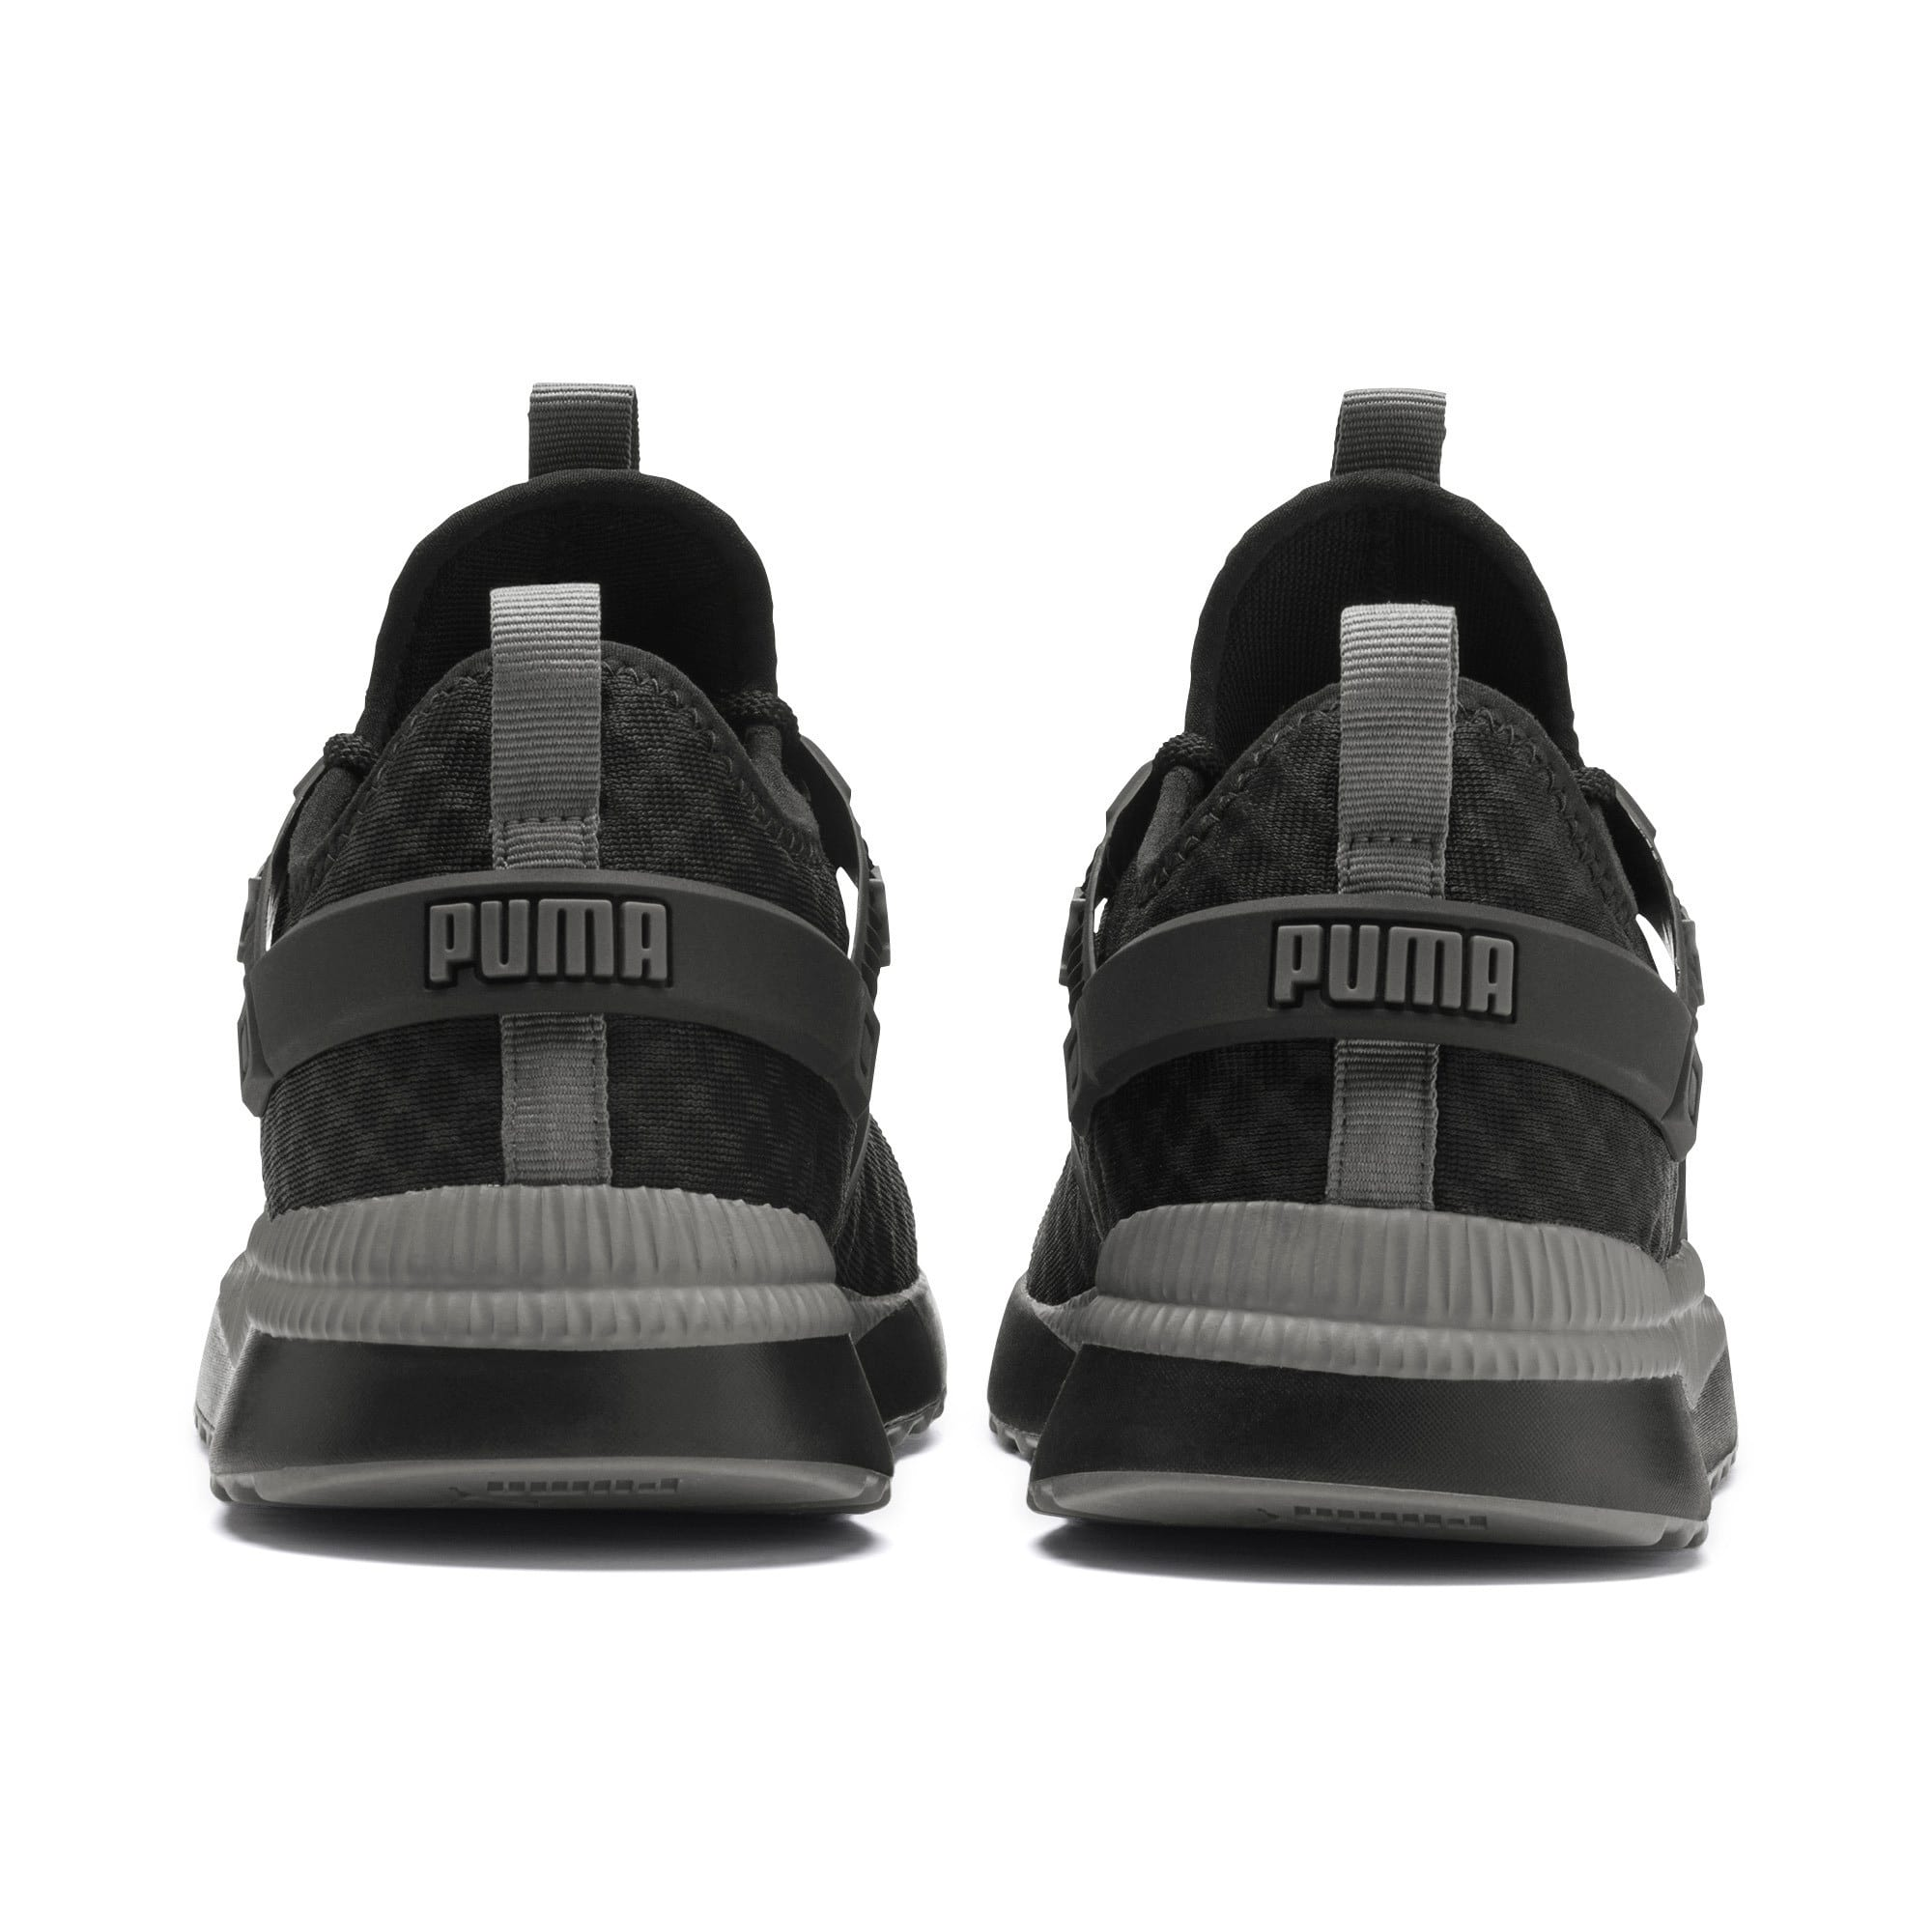 Thumbnail 4 of Pacer Next Excel Core Sneakers, Puma Black-Charcoal Gray, medium